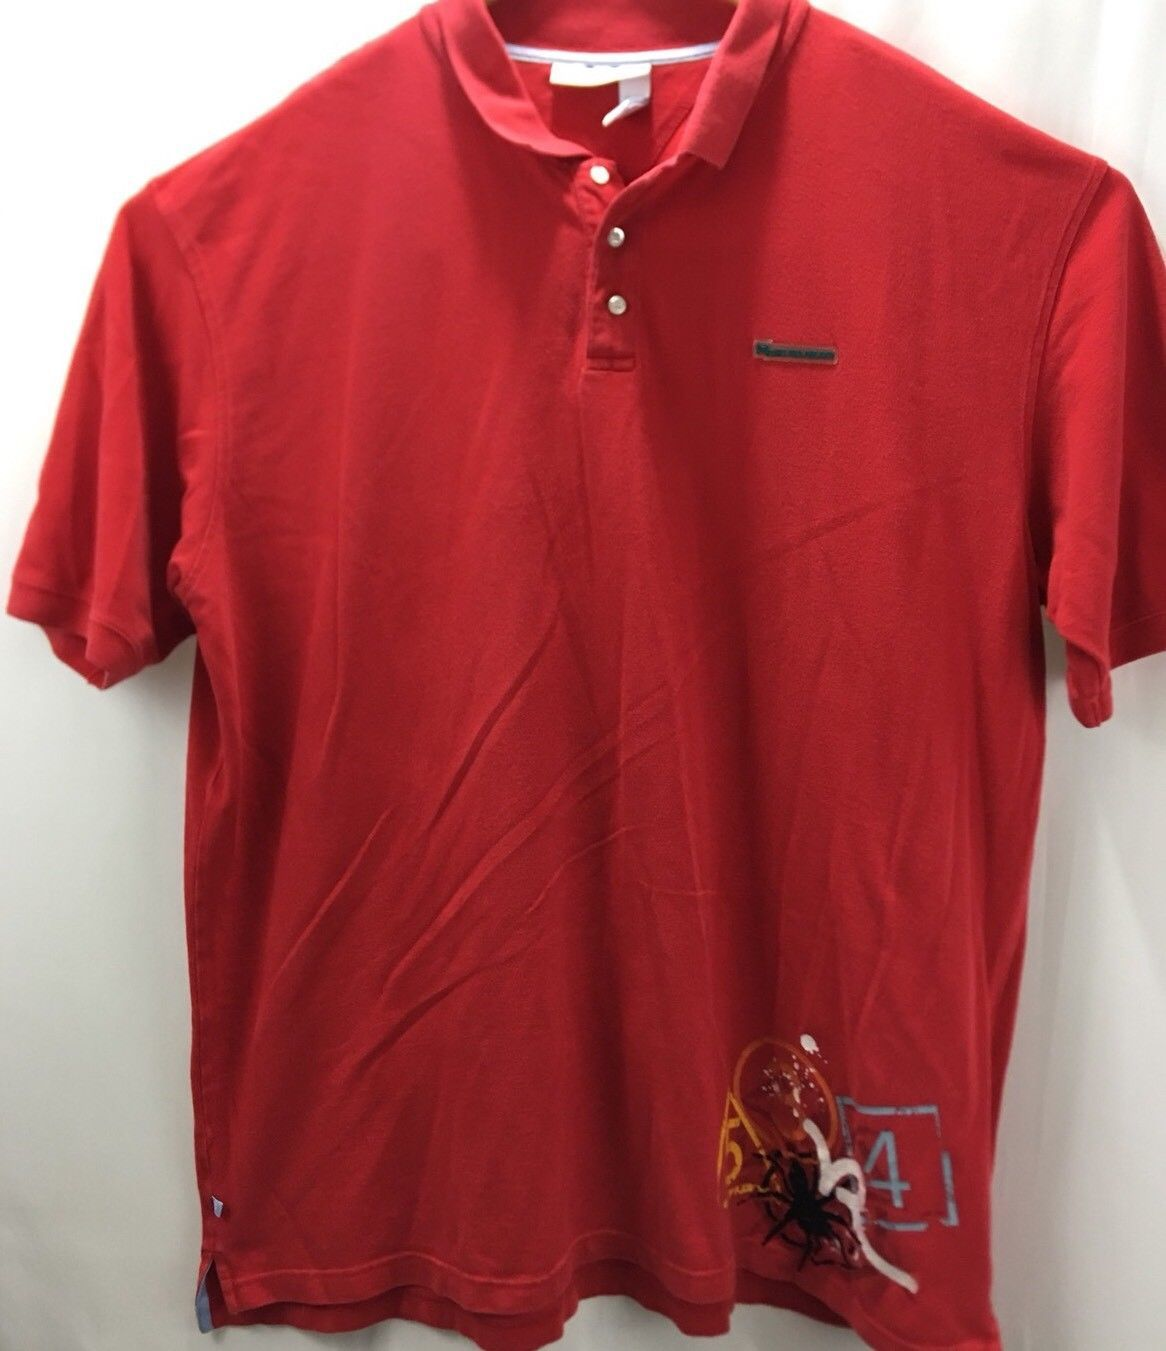 0754f40d Rocawear Mens 3XL Short Sleeve Polo W Spider Design EUC - $15.27